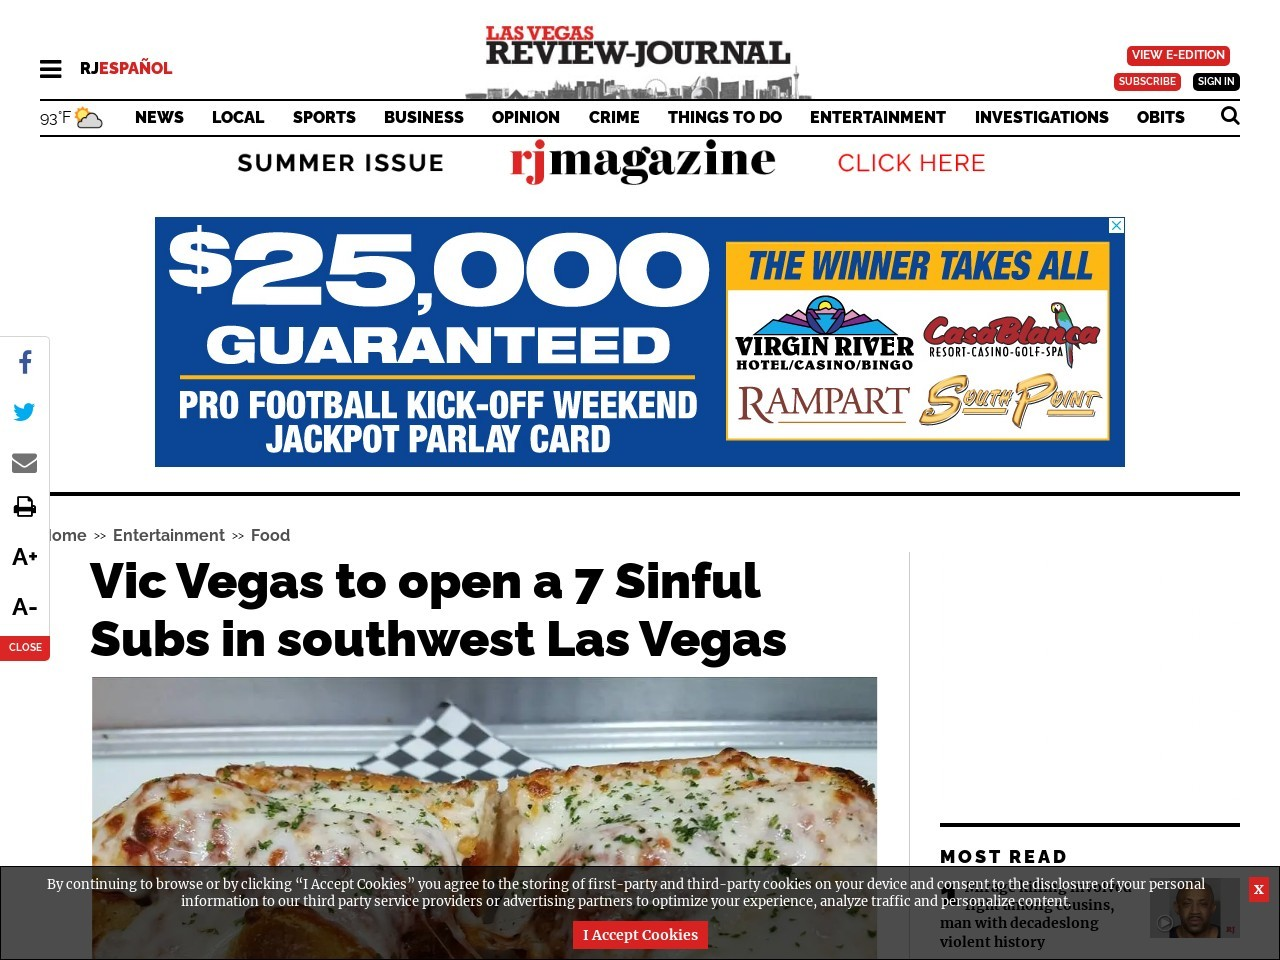 Vic Vegas to open a 7 Sinful Subs in southwest Las Vegas